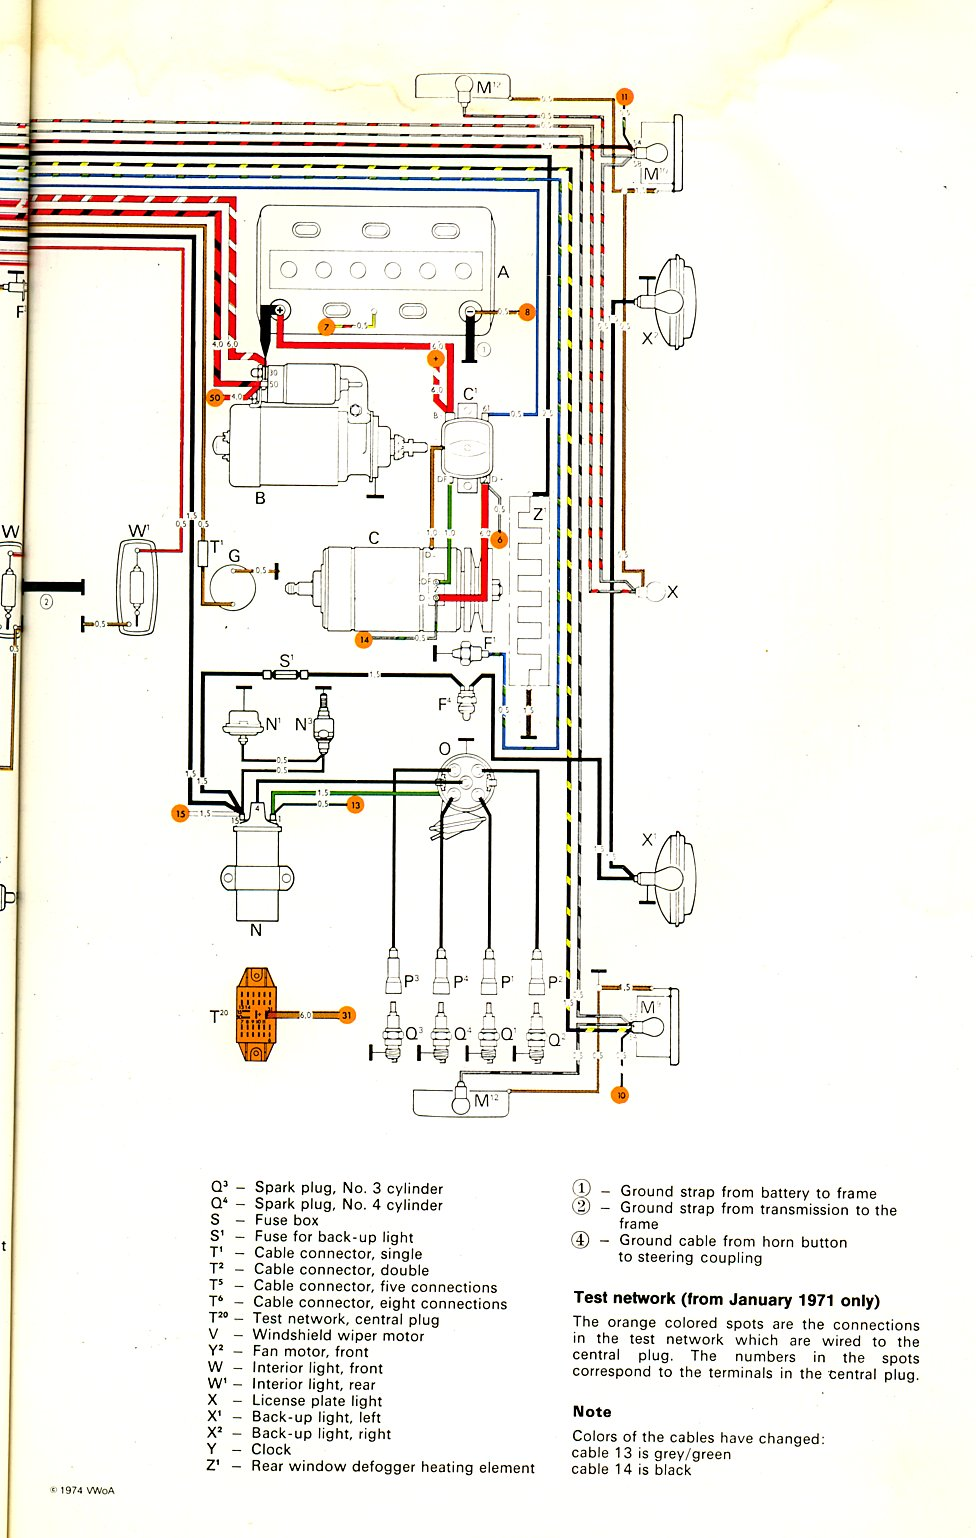 Type 2 Wiring Diagrams 1980 Oldsmobile Ignition Diagram